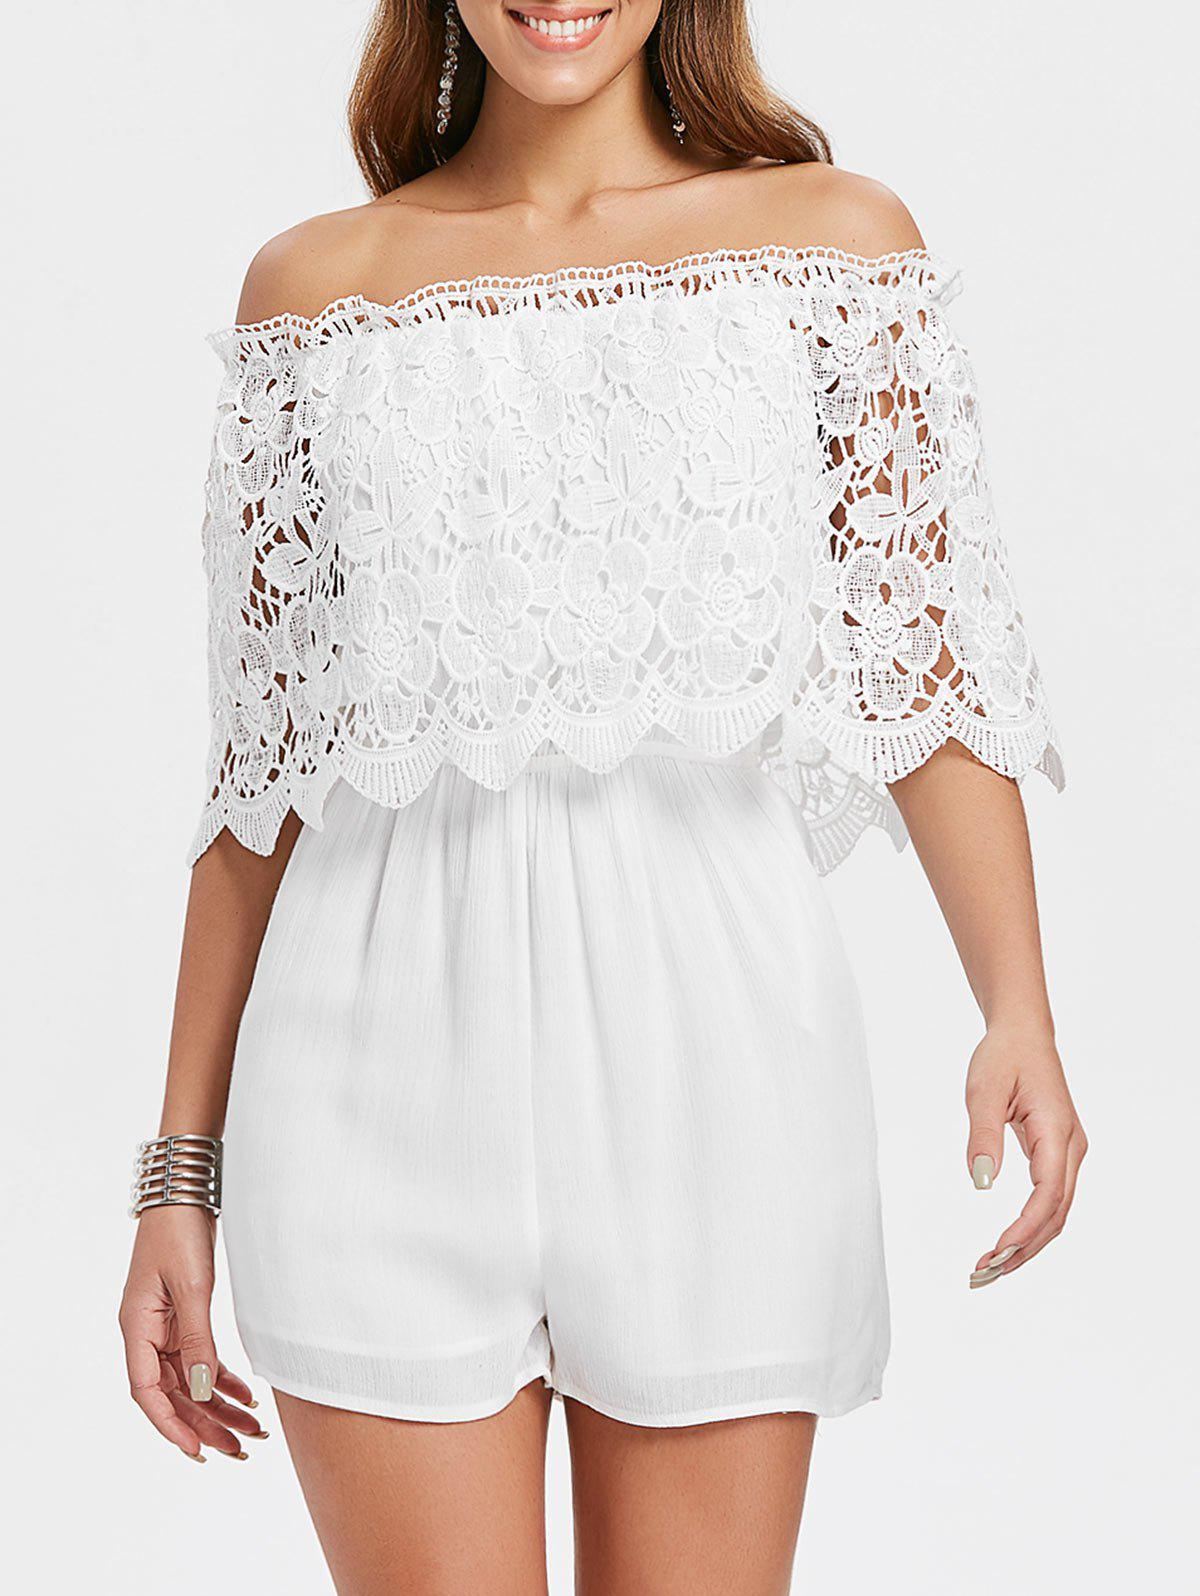 Unique Hollow Out Lace Overlay Romper